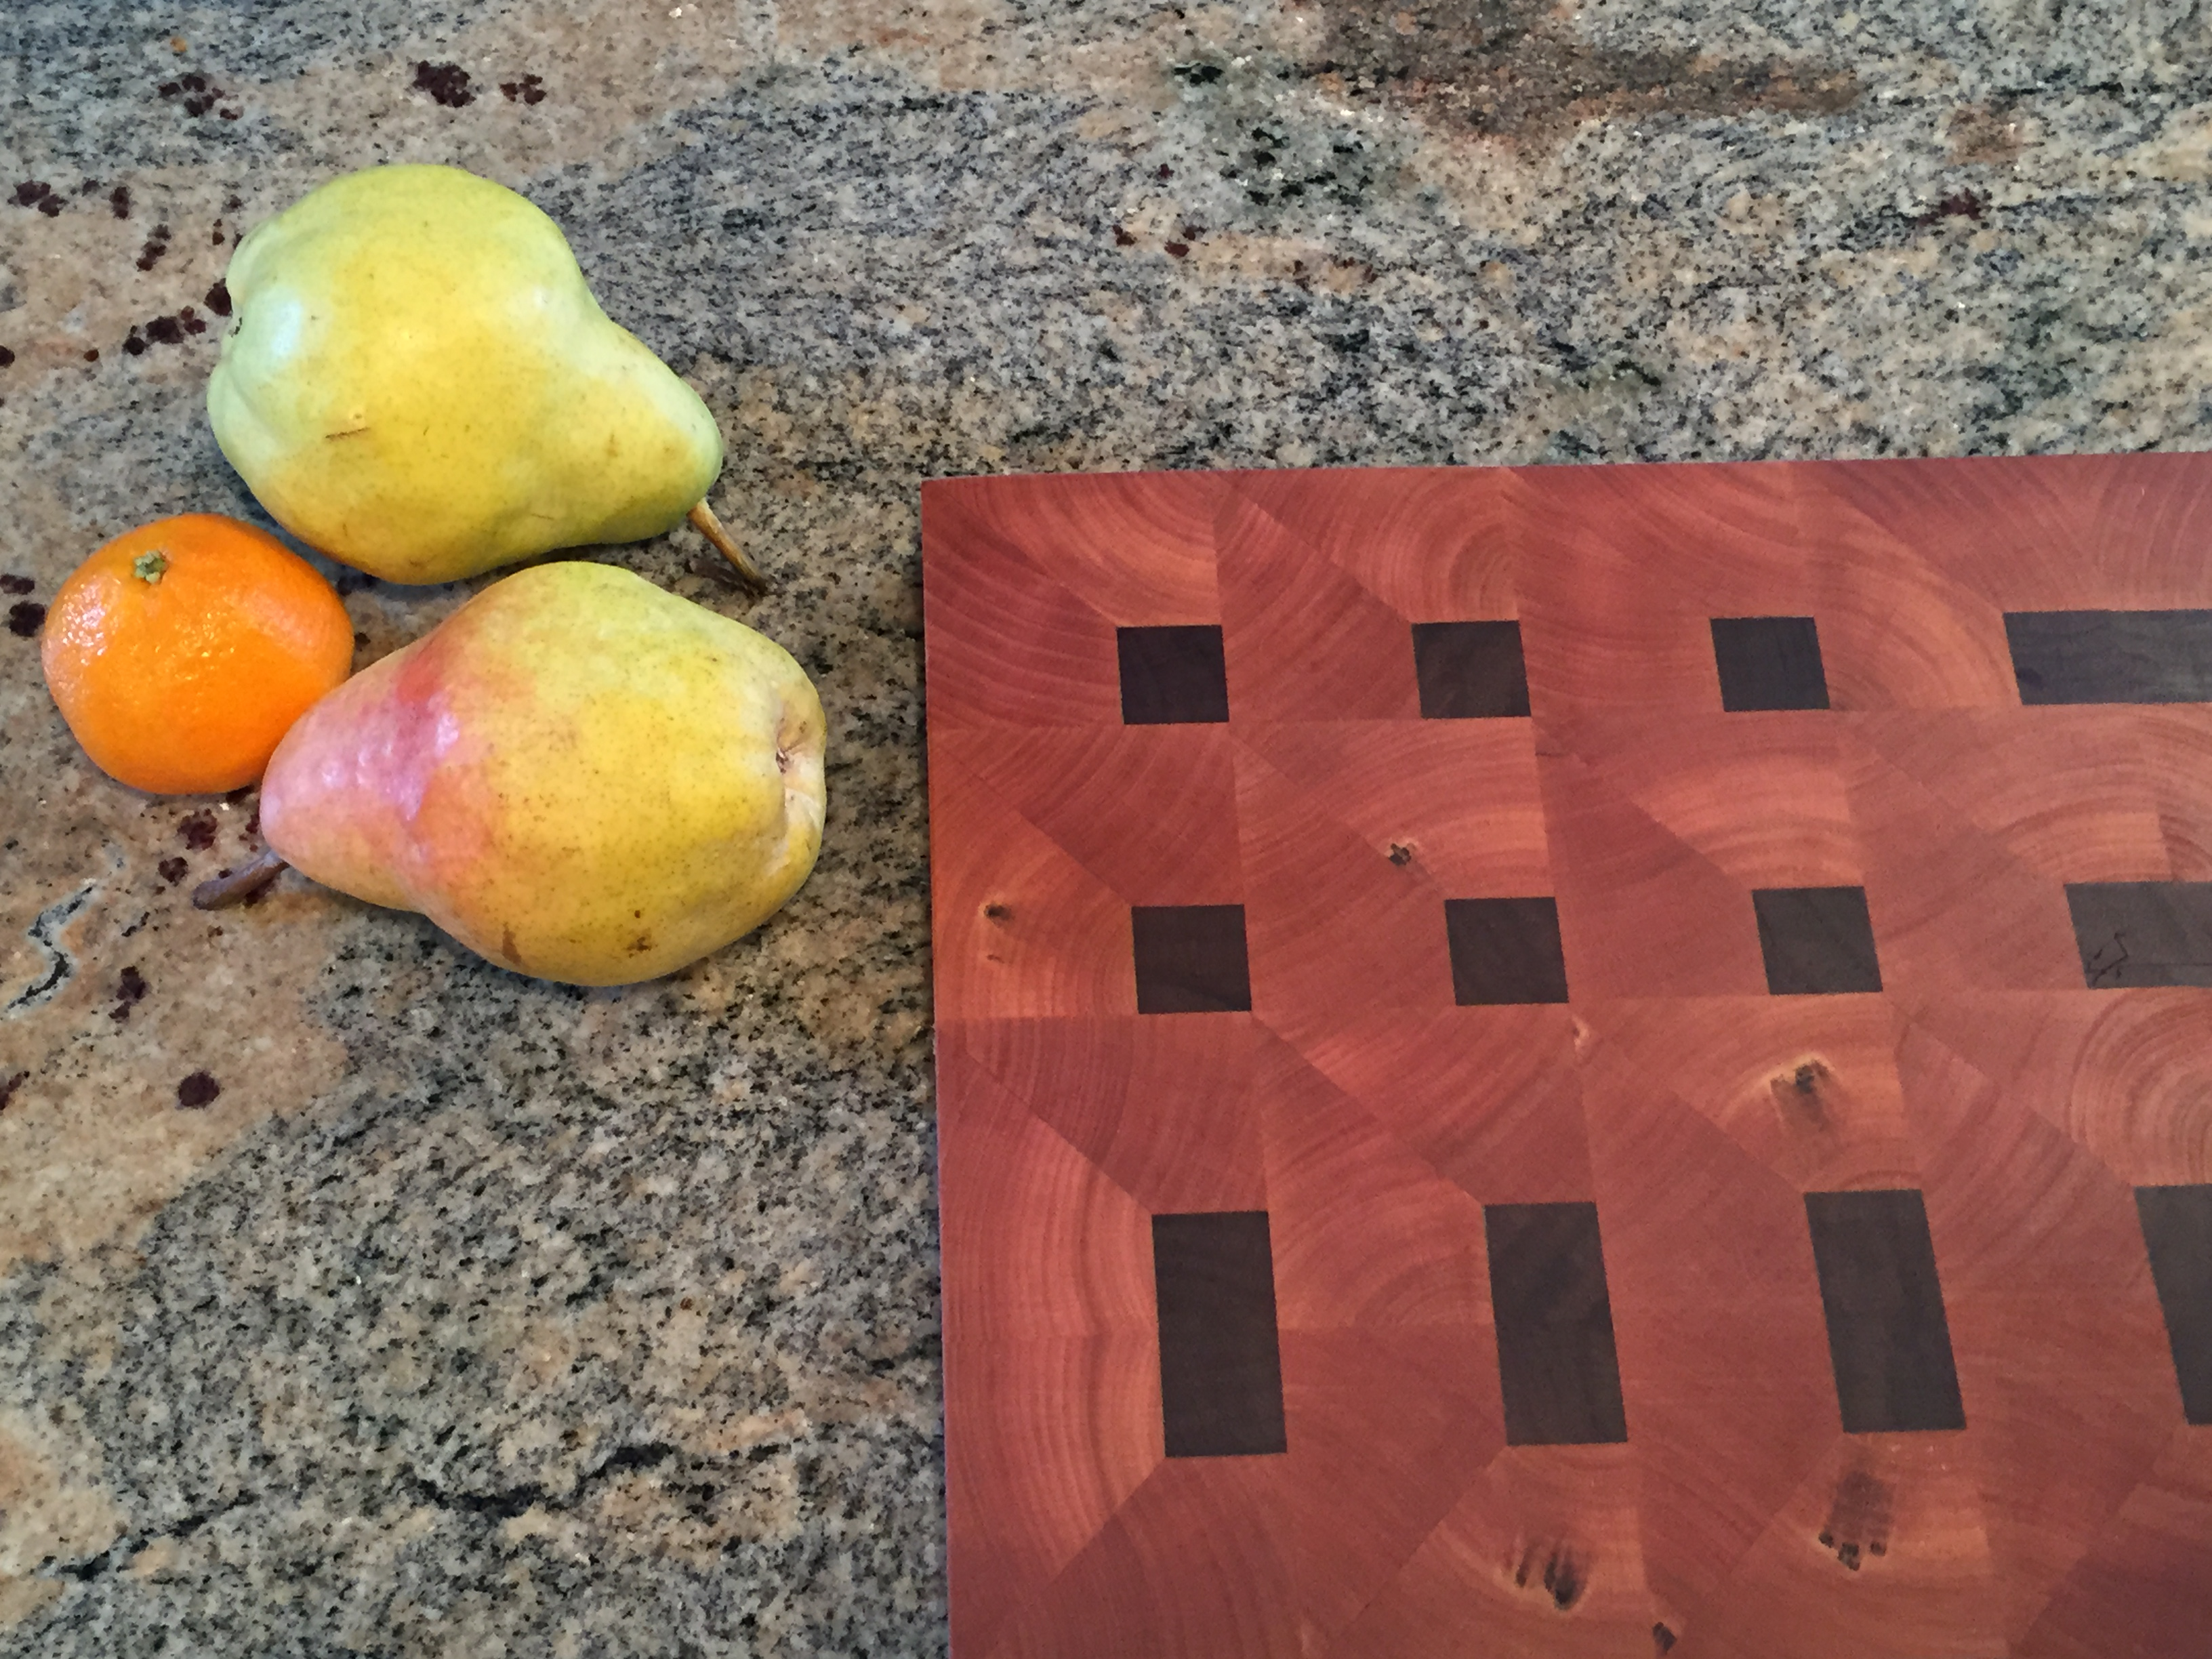 #8 Rectangular cutting board